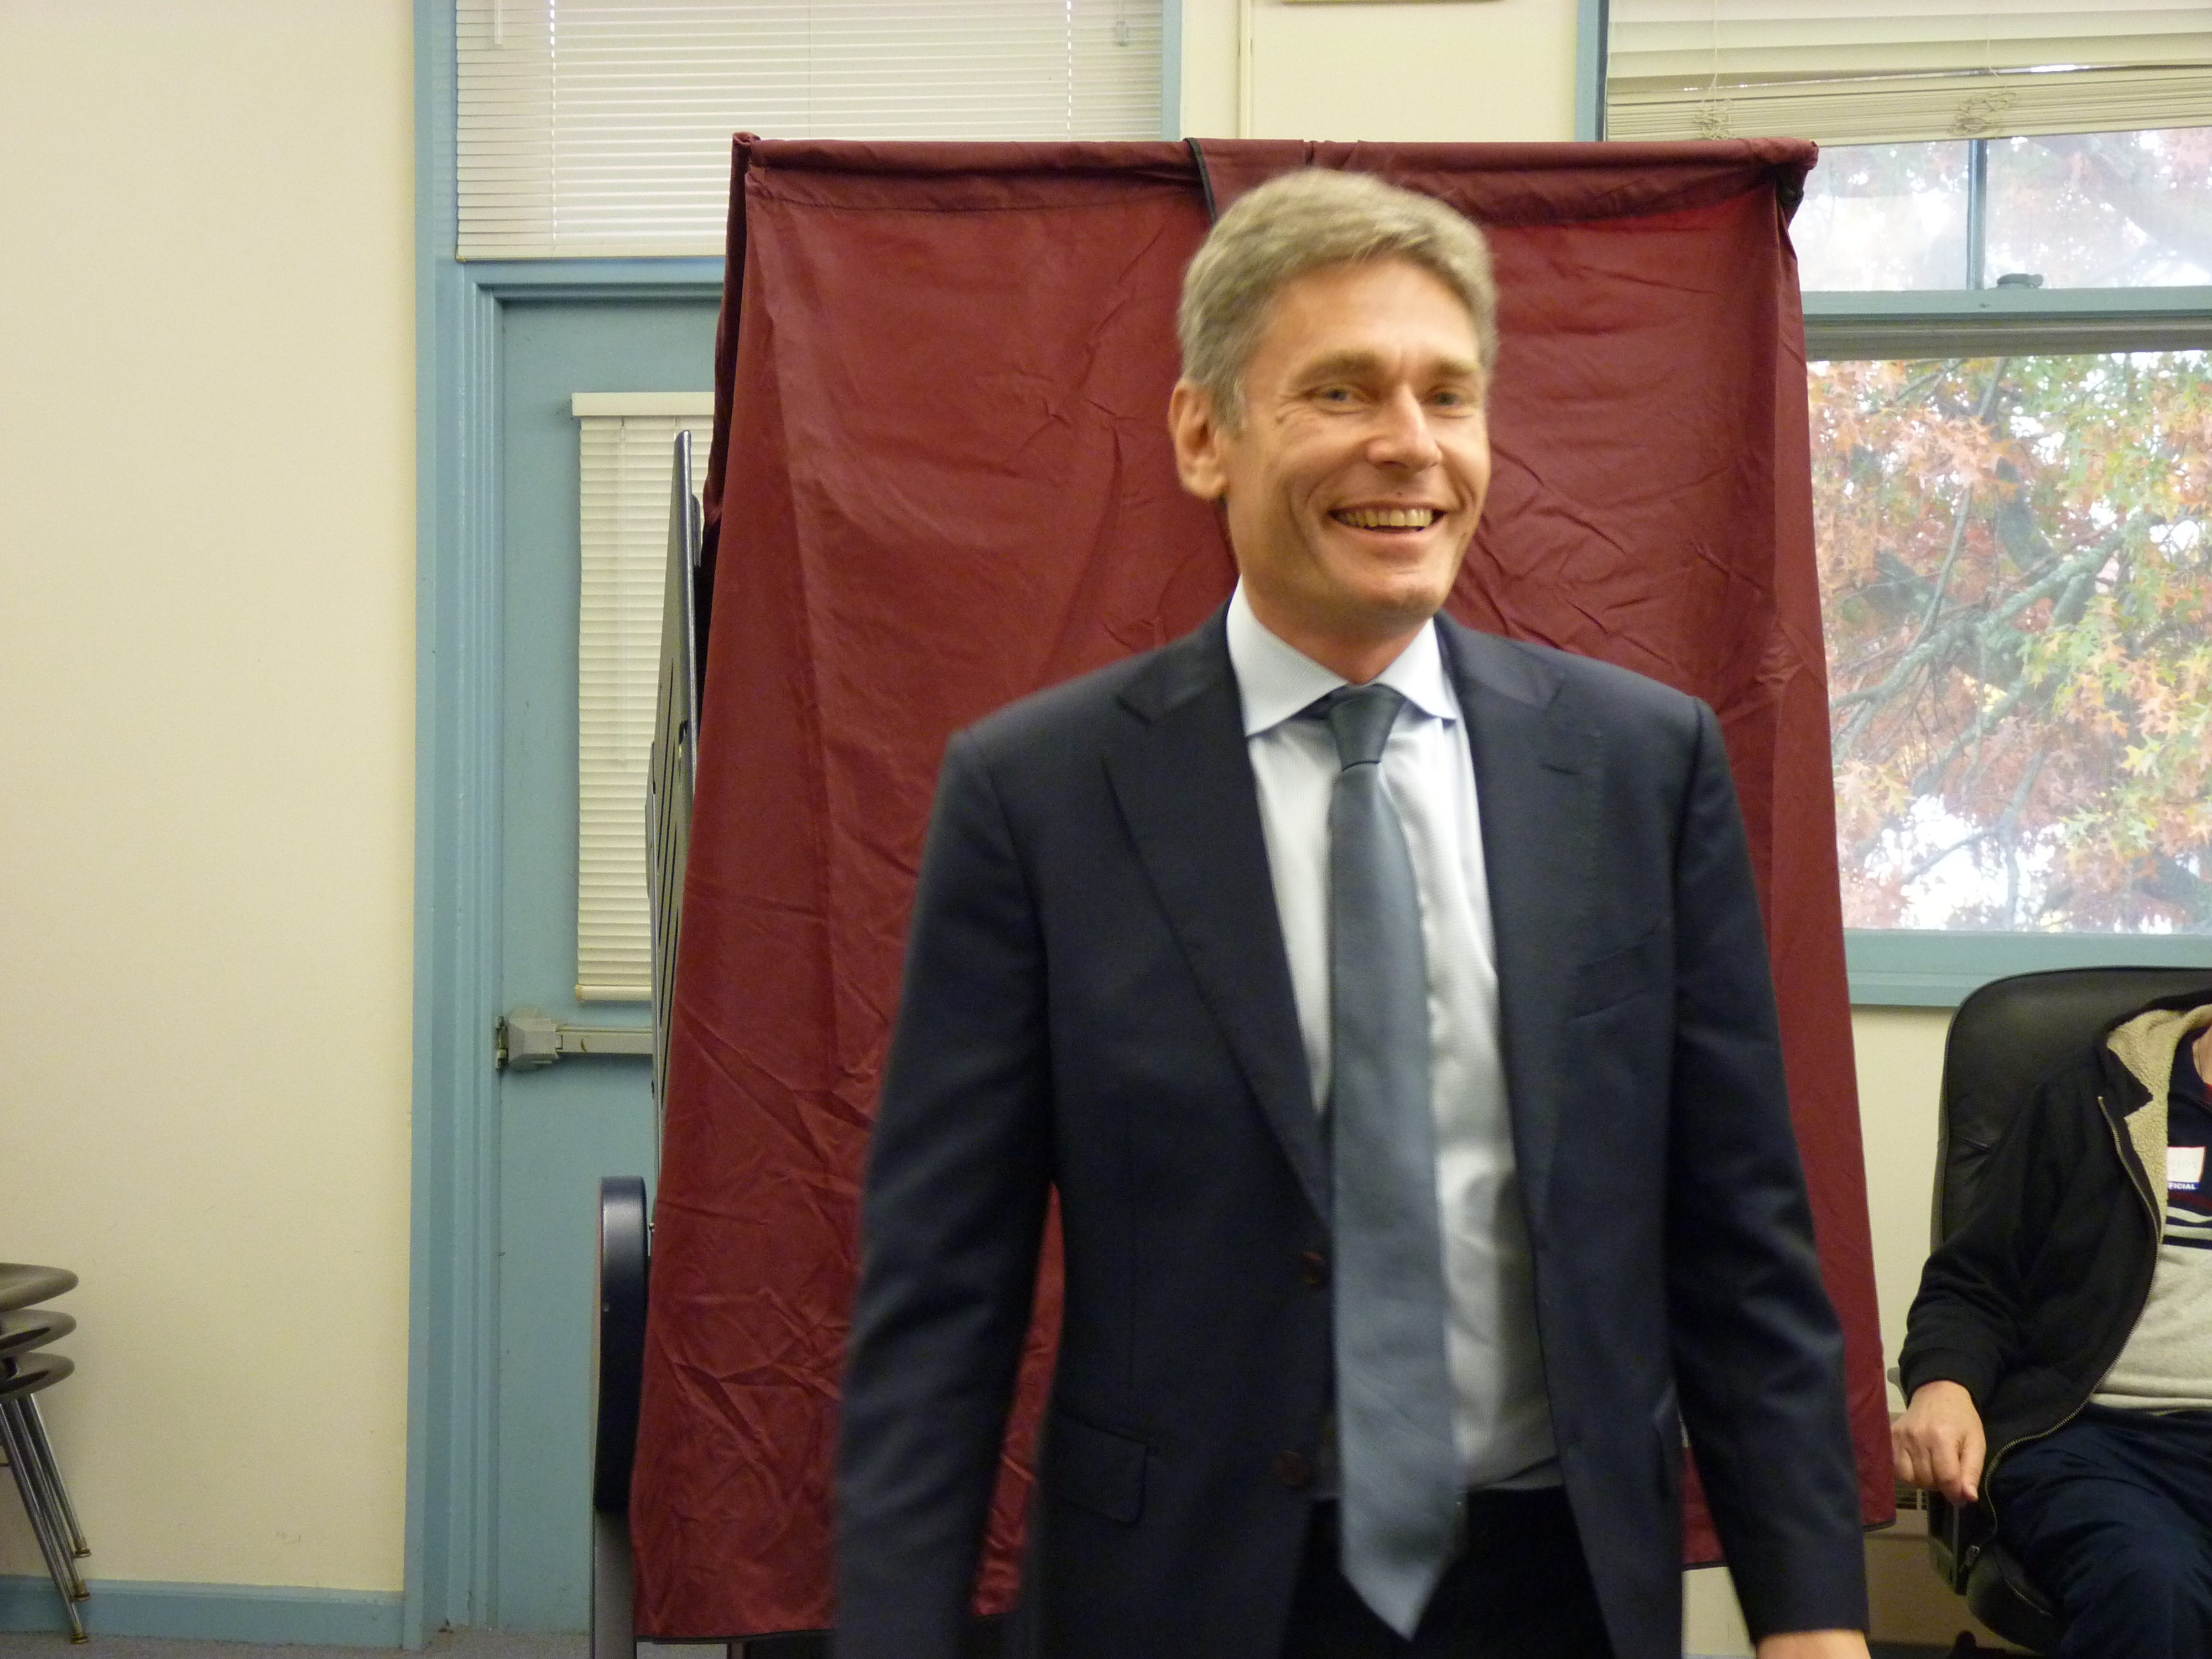 Congresman-elect Tom Malinowski after voting in Rocky Hill.